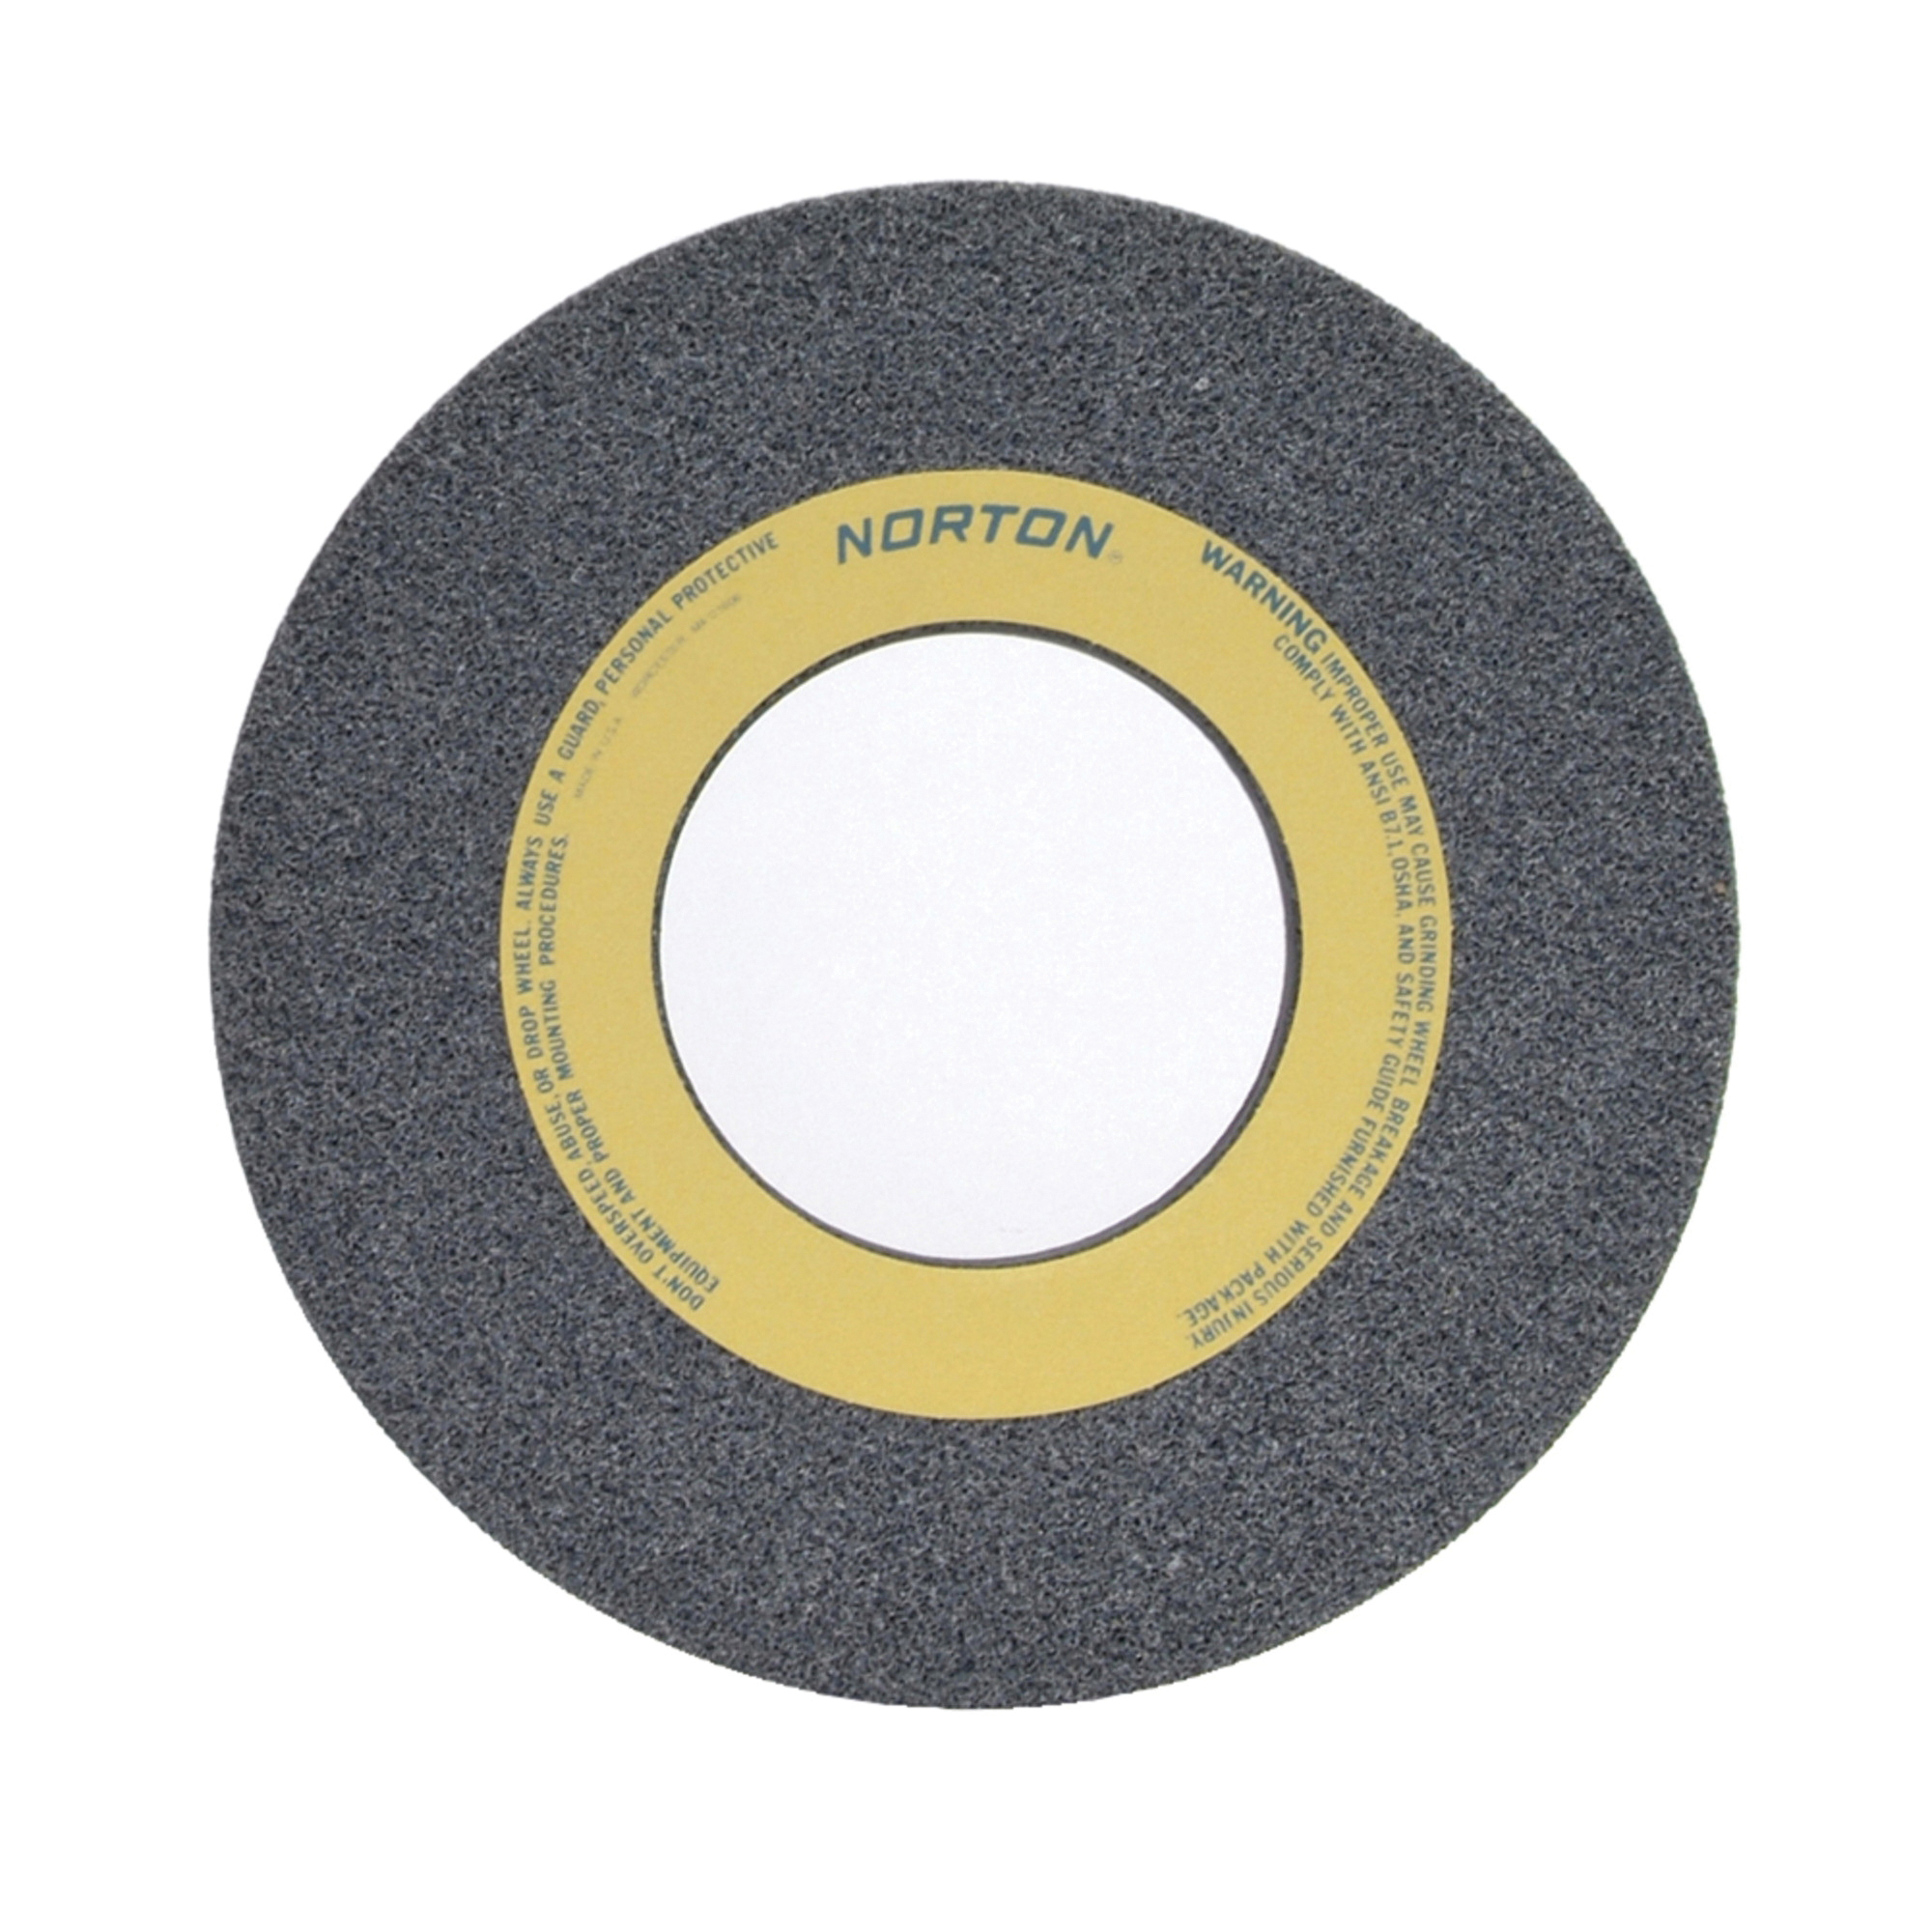 Norton® 66253364246 32A Straight Toolroom Wheel, 14 in Dia x 1-1/2 in THK, 5 in Center Hole, 80 Grit, Aluminum Oxide Abrasive